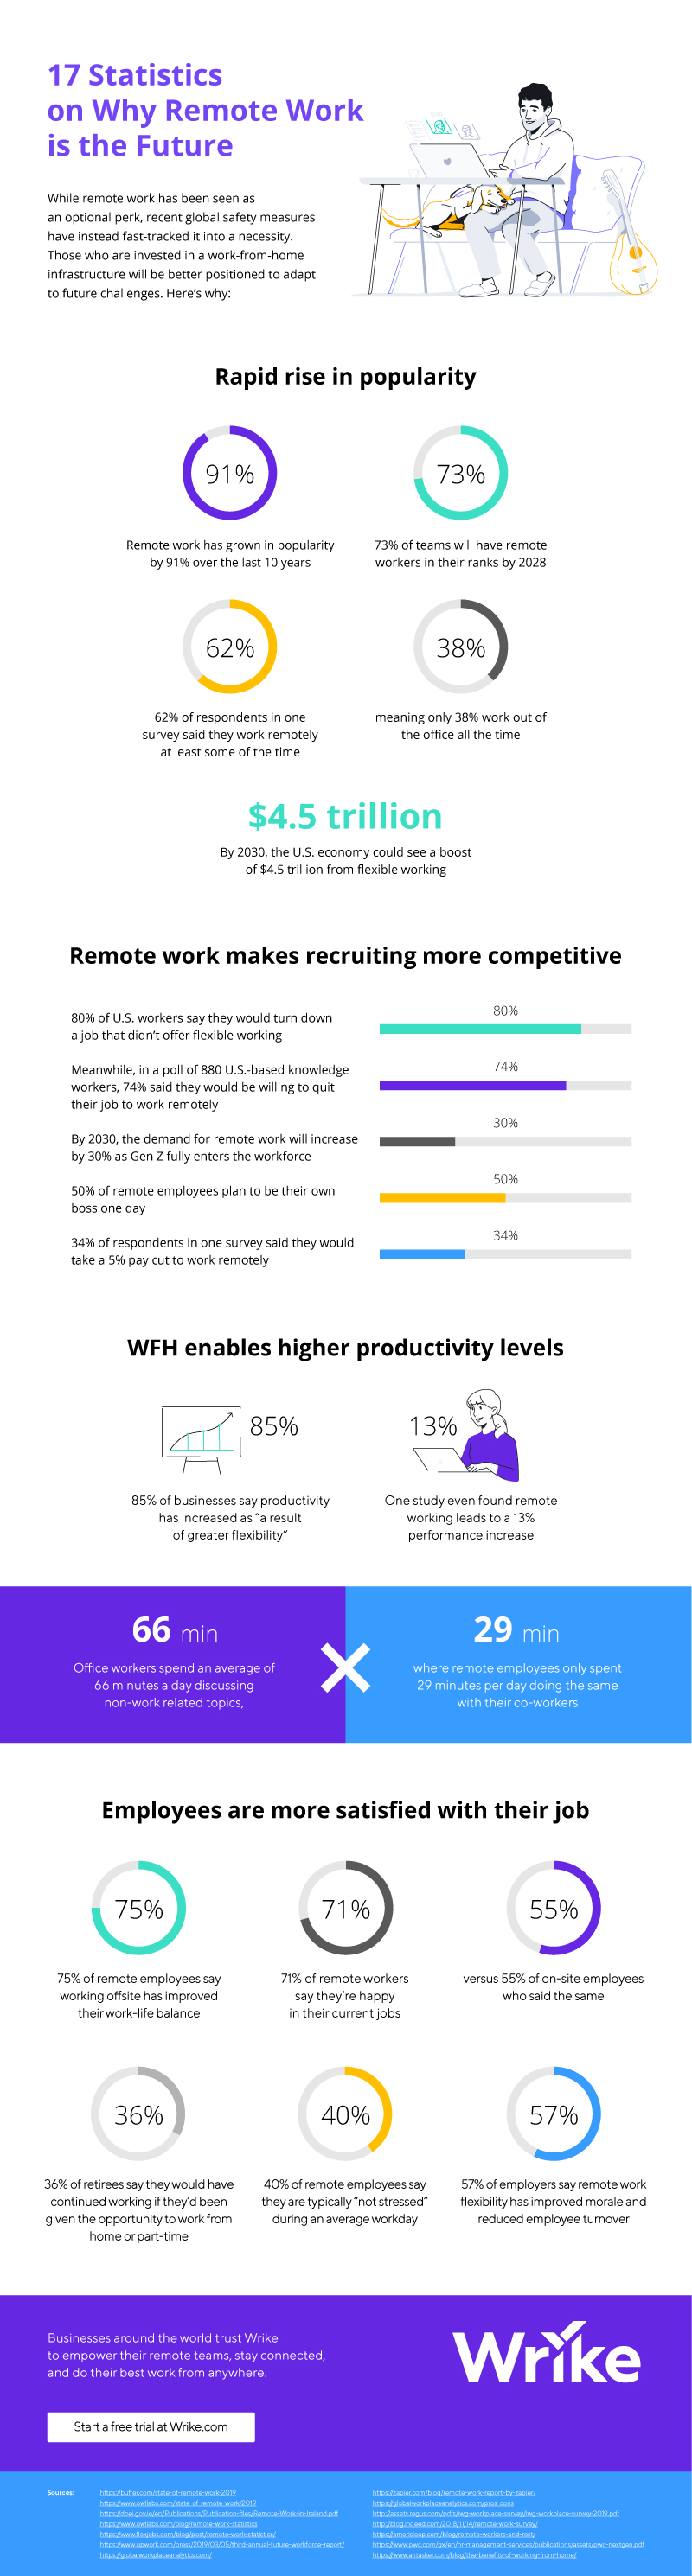 17 Reasons Why Remote Work is the Future (Infographic) 2